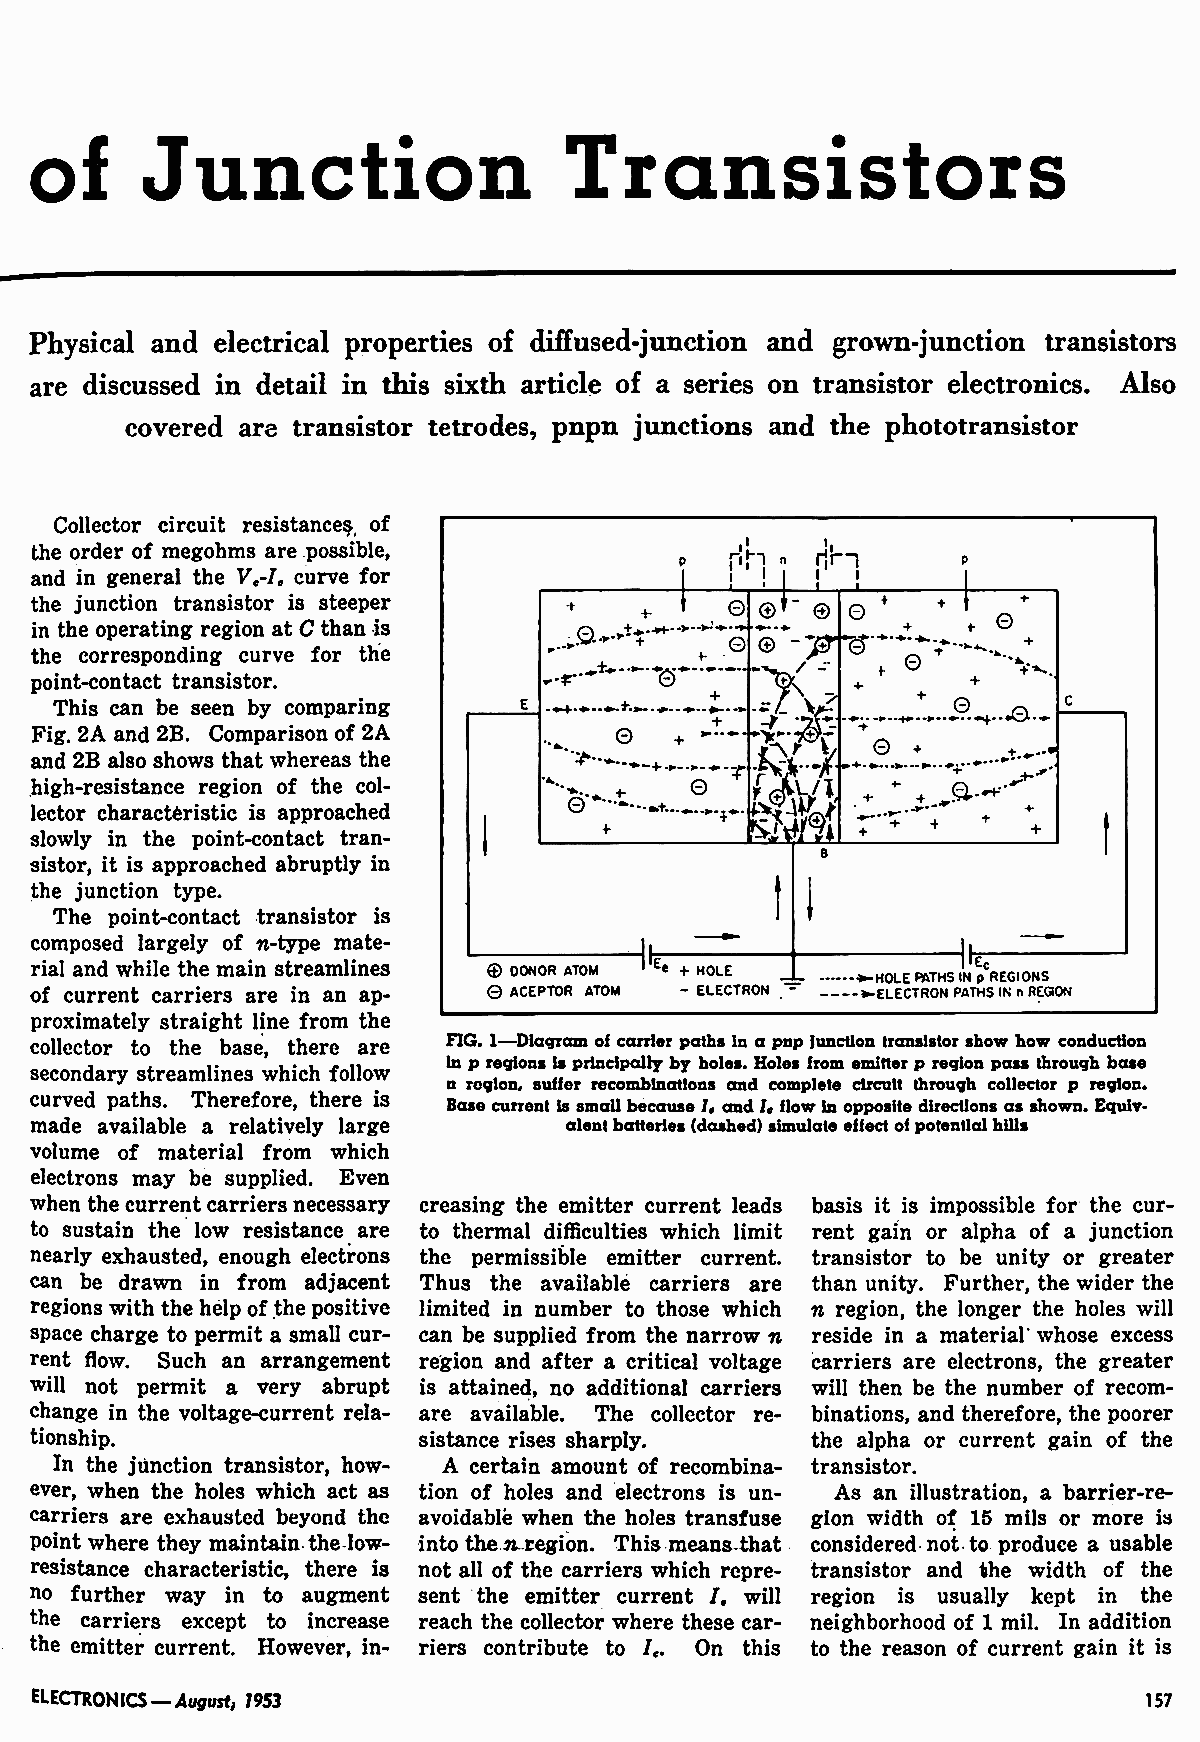 Early Transistor Days Silicon Controlled Rectifier Circuits In A Short While This Device Should Have Originated The Families Of Semiconductor Switches Later Known As Scs Switch Or Scr